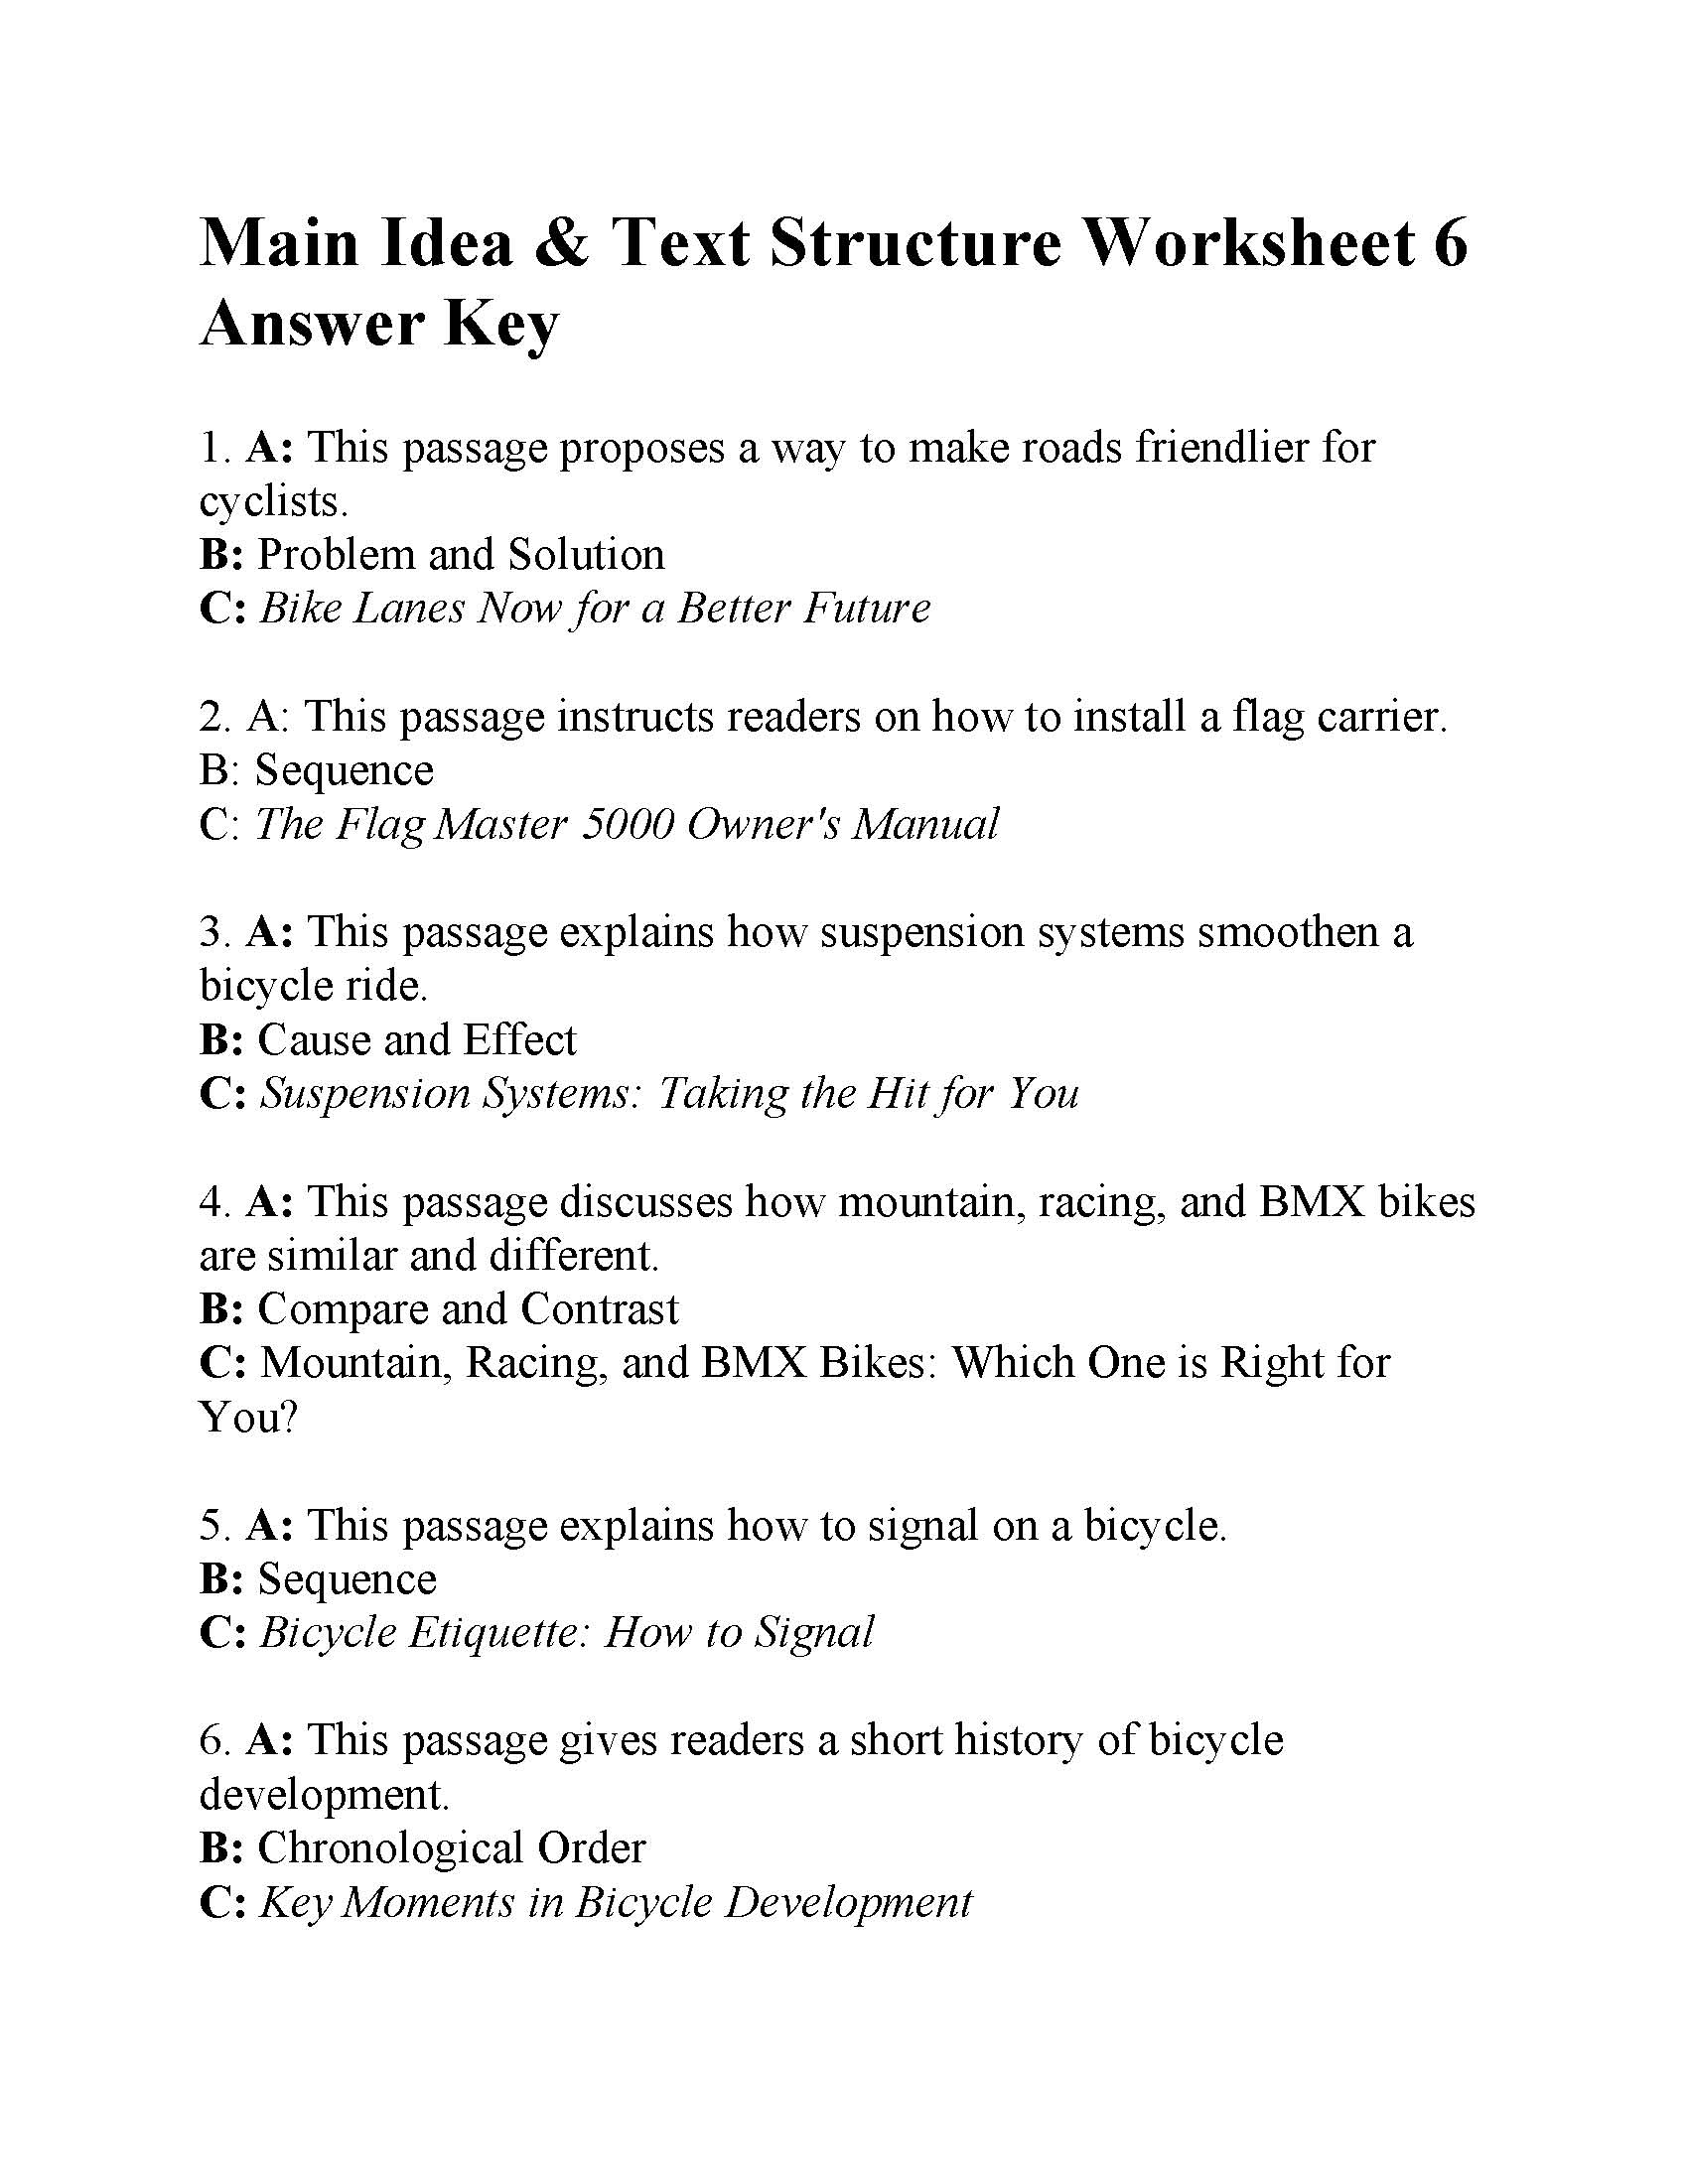 This is the answer key for the Main Idea and Text Structure Worksheet 6.